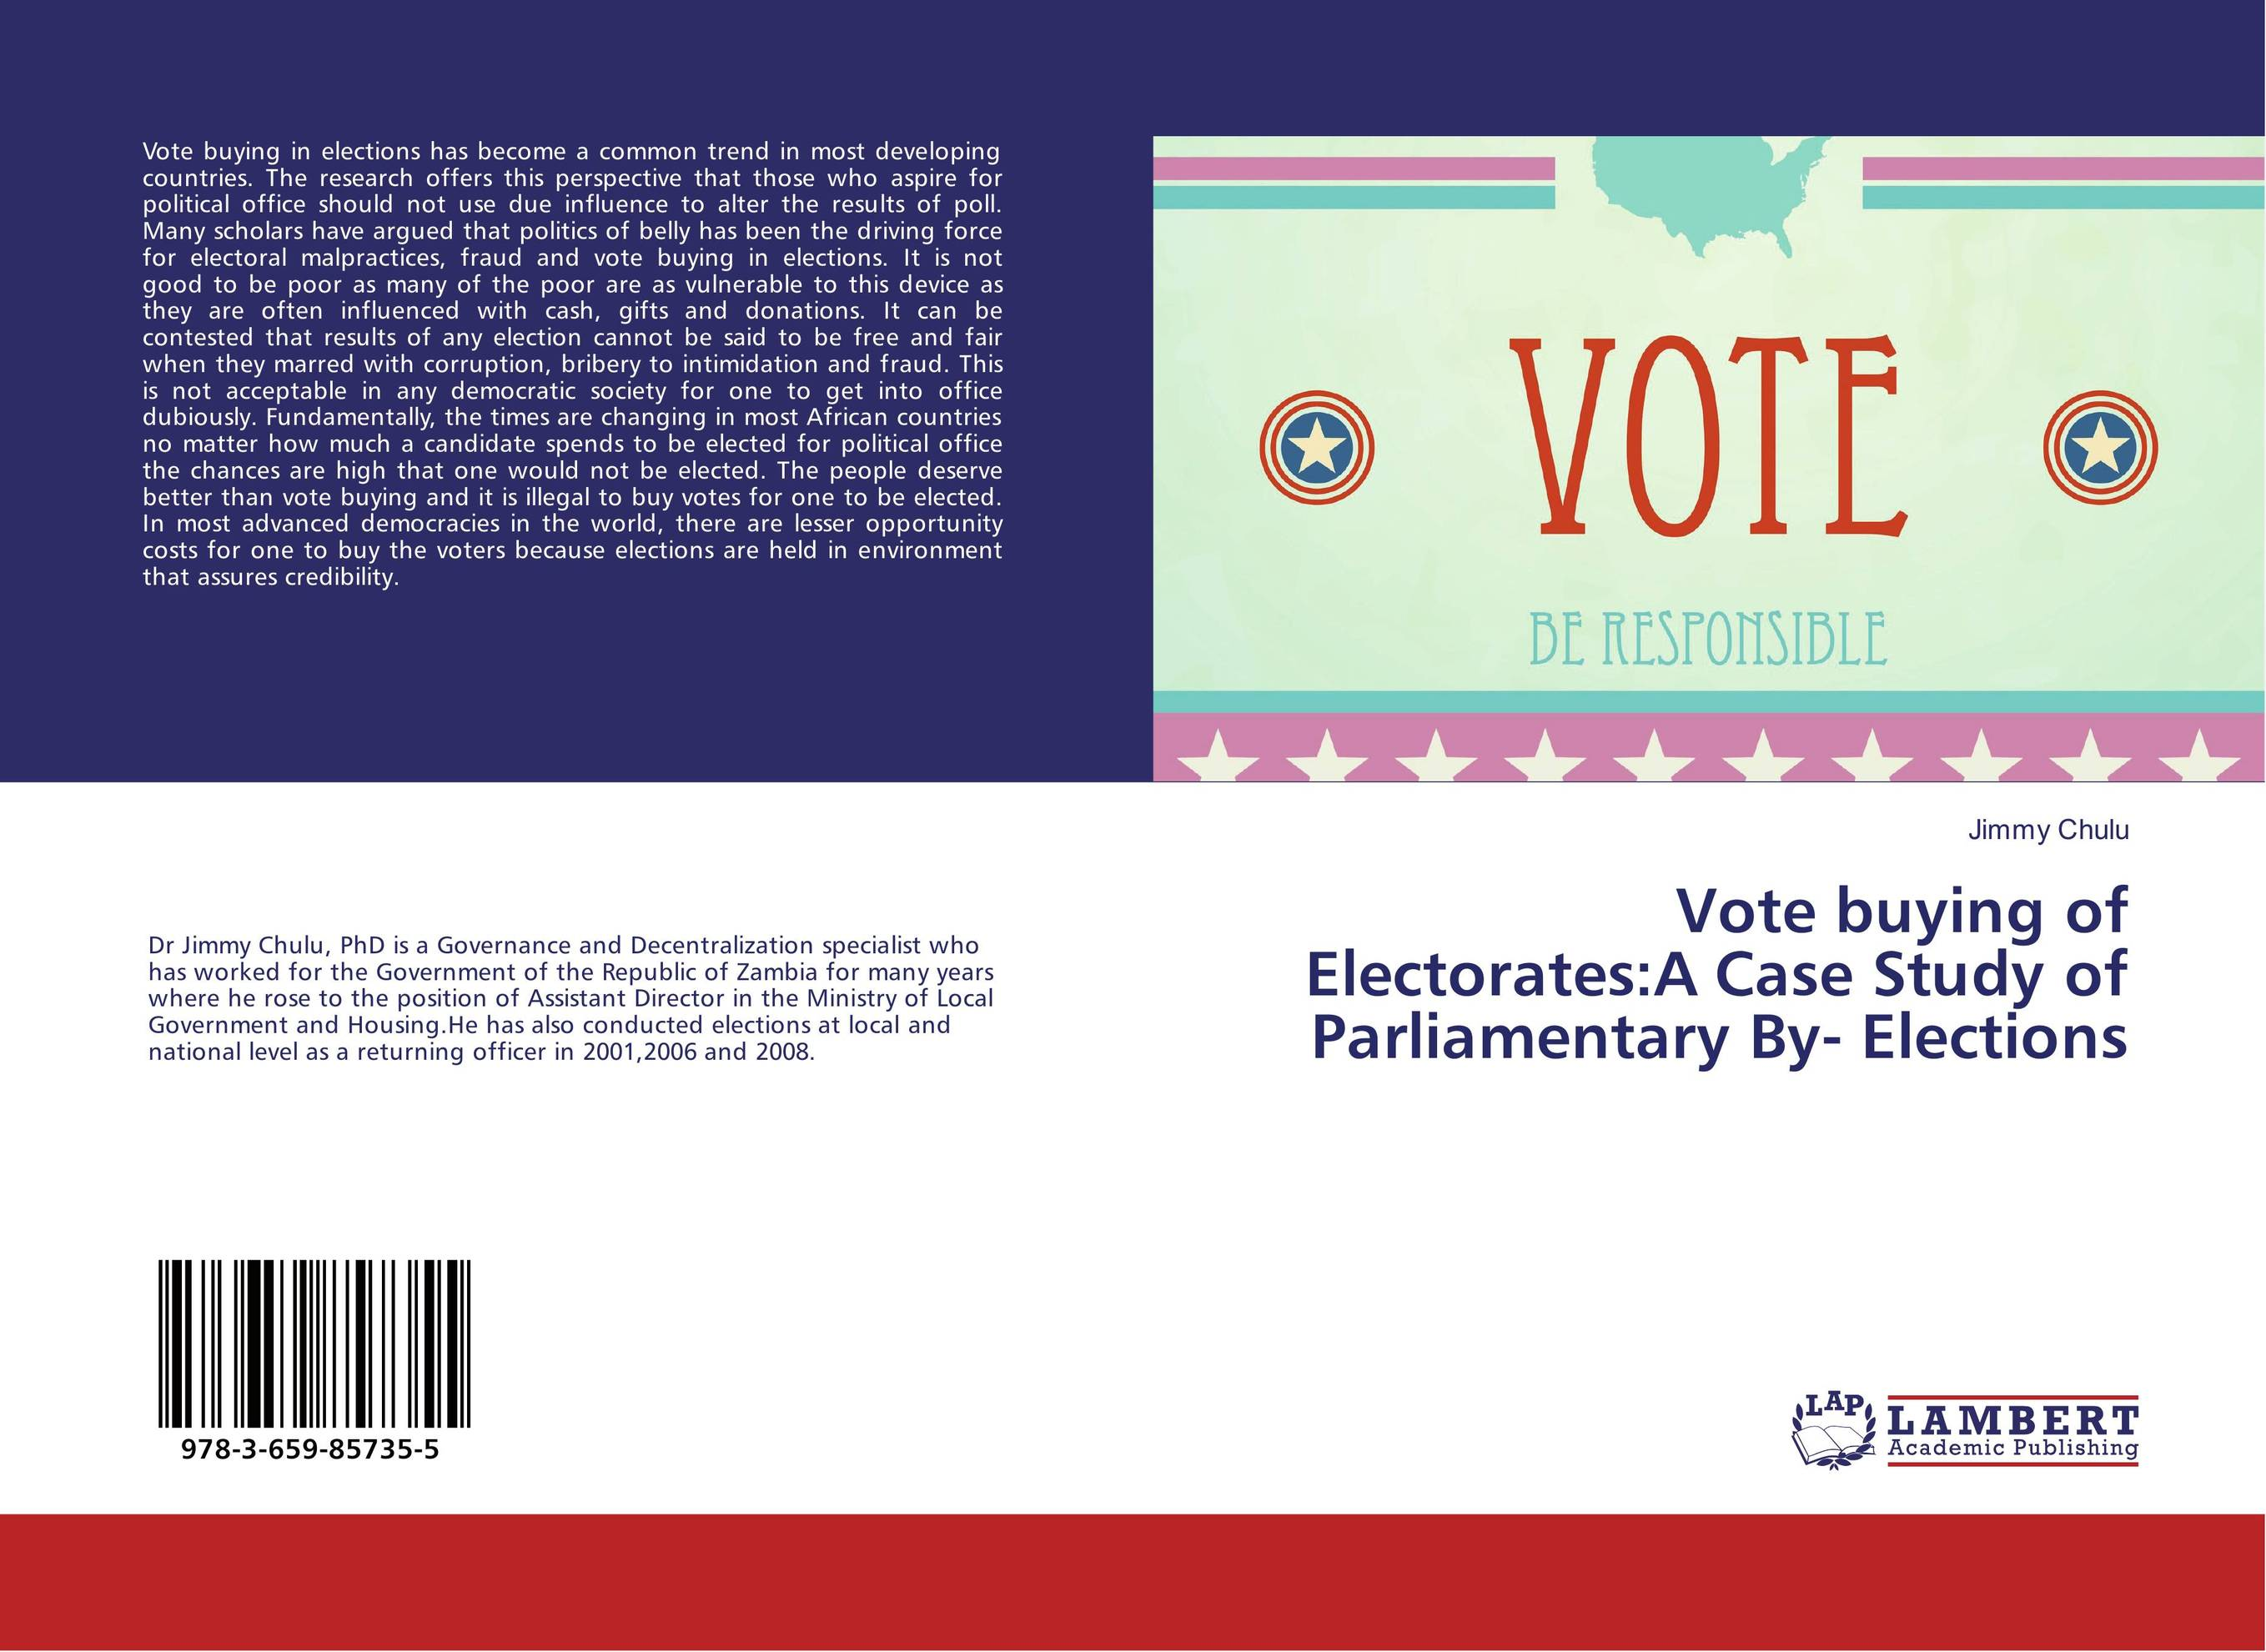 Vote buying of Electorates:A Case Study of Parliamentary By- Elections right to vote and to be elected in divided societies